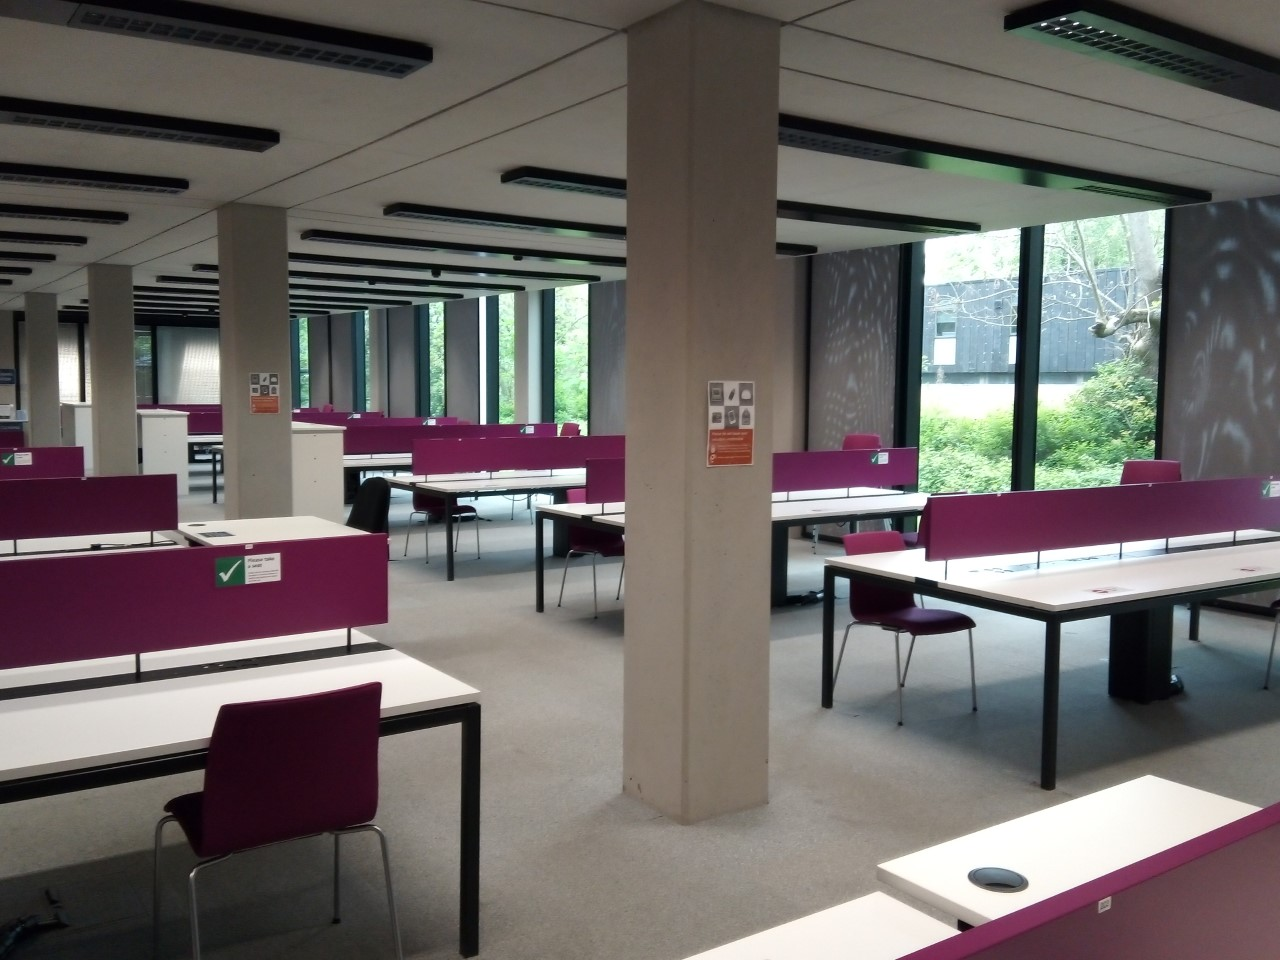 Desks with partitioned seating in the SSL